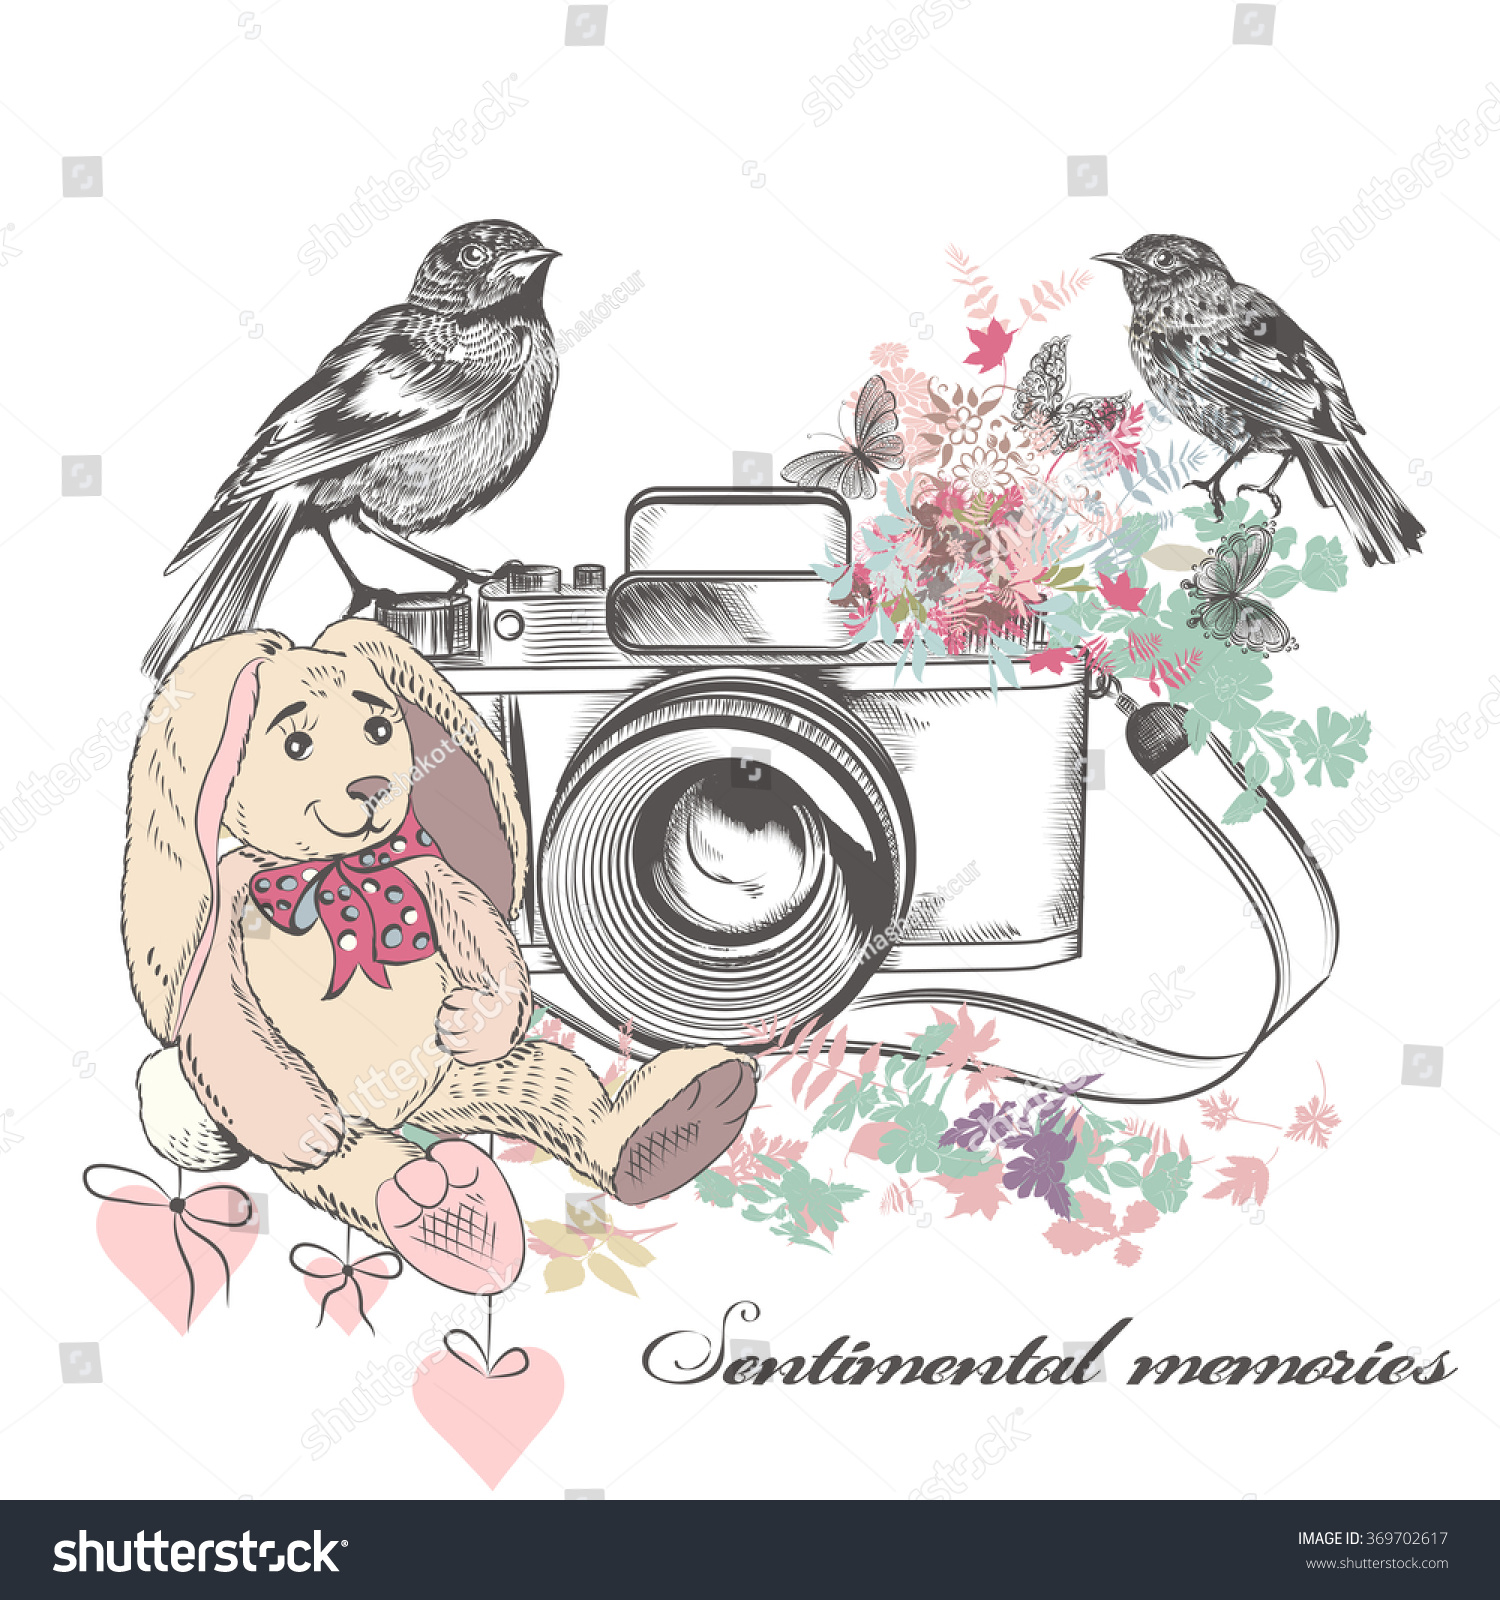 Beautiful Romantic Card With Old Camera Birds Flowers And Toy Rabbit In Vintage Rustic Style